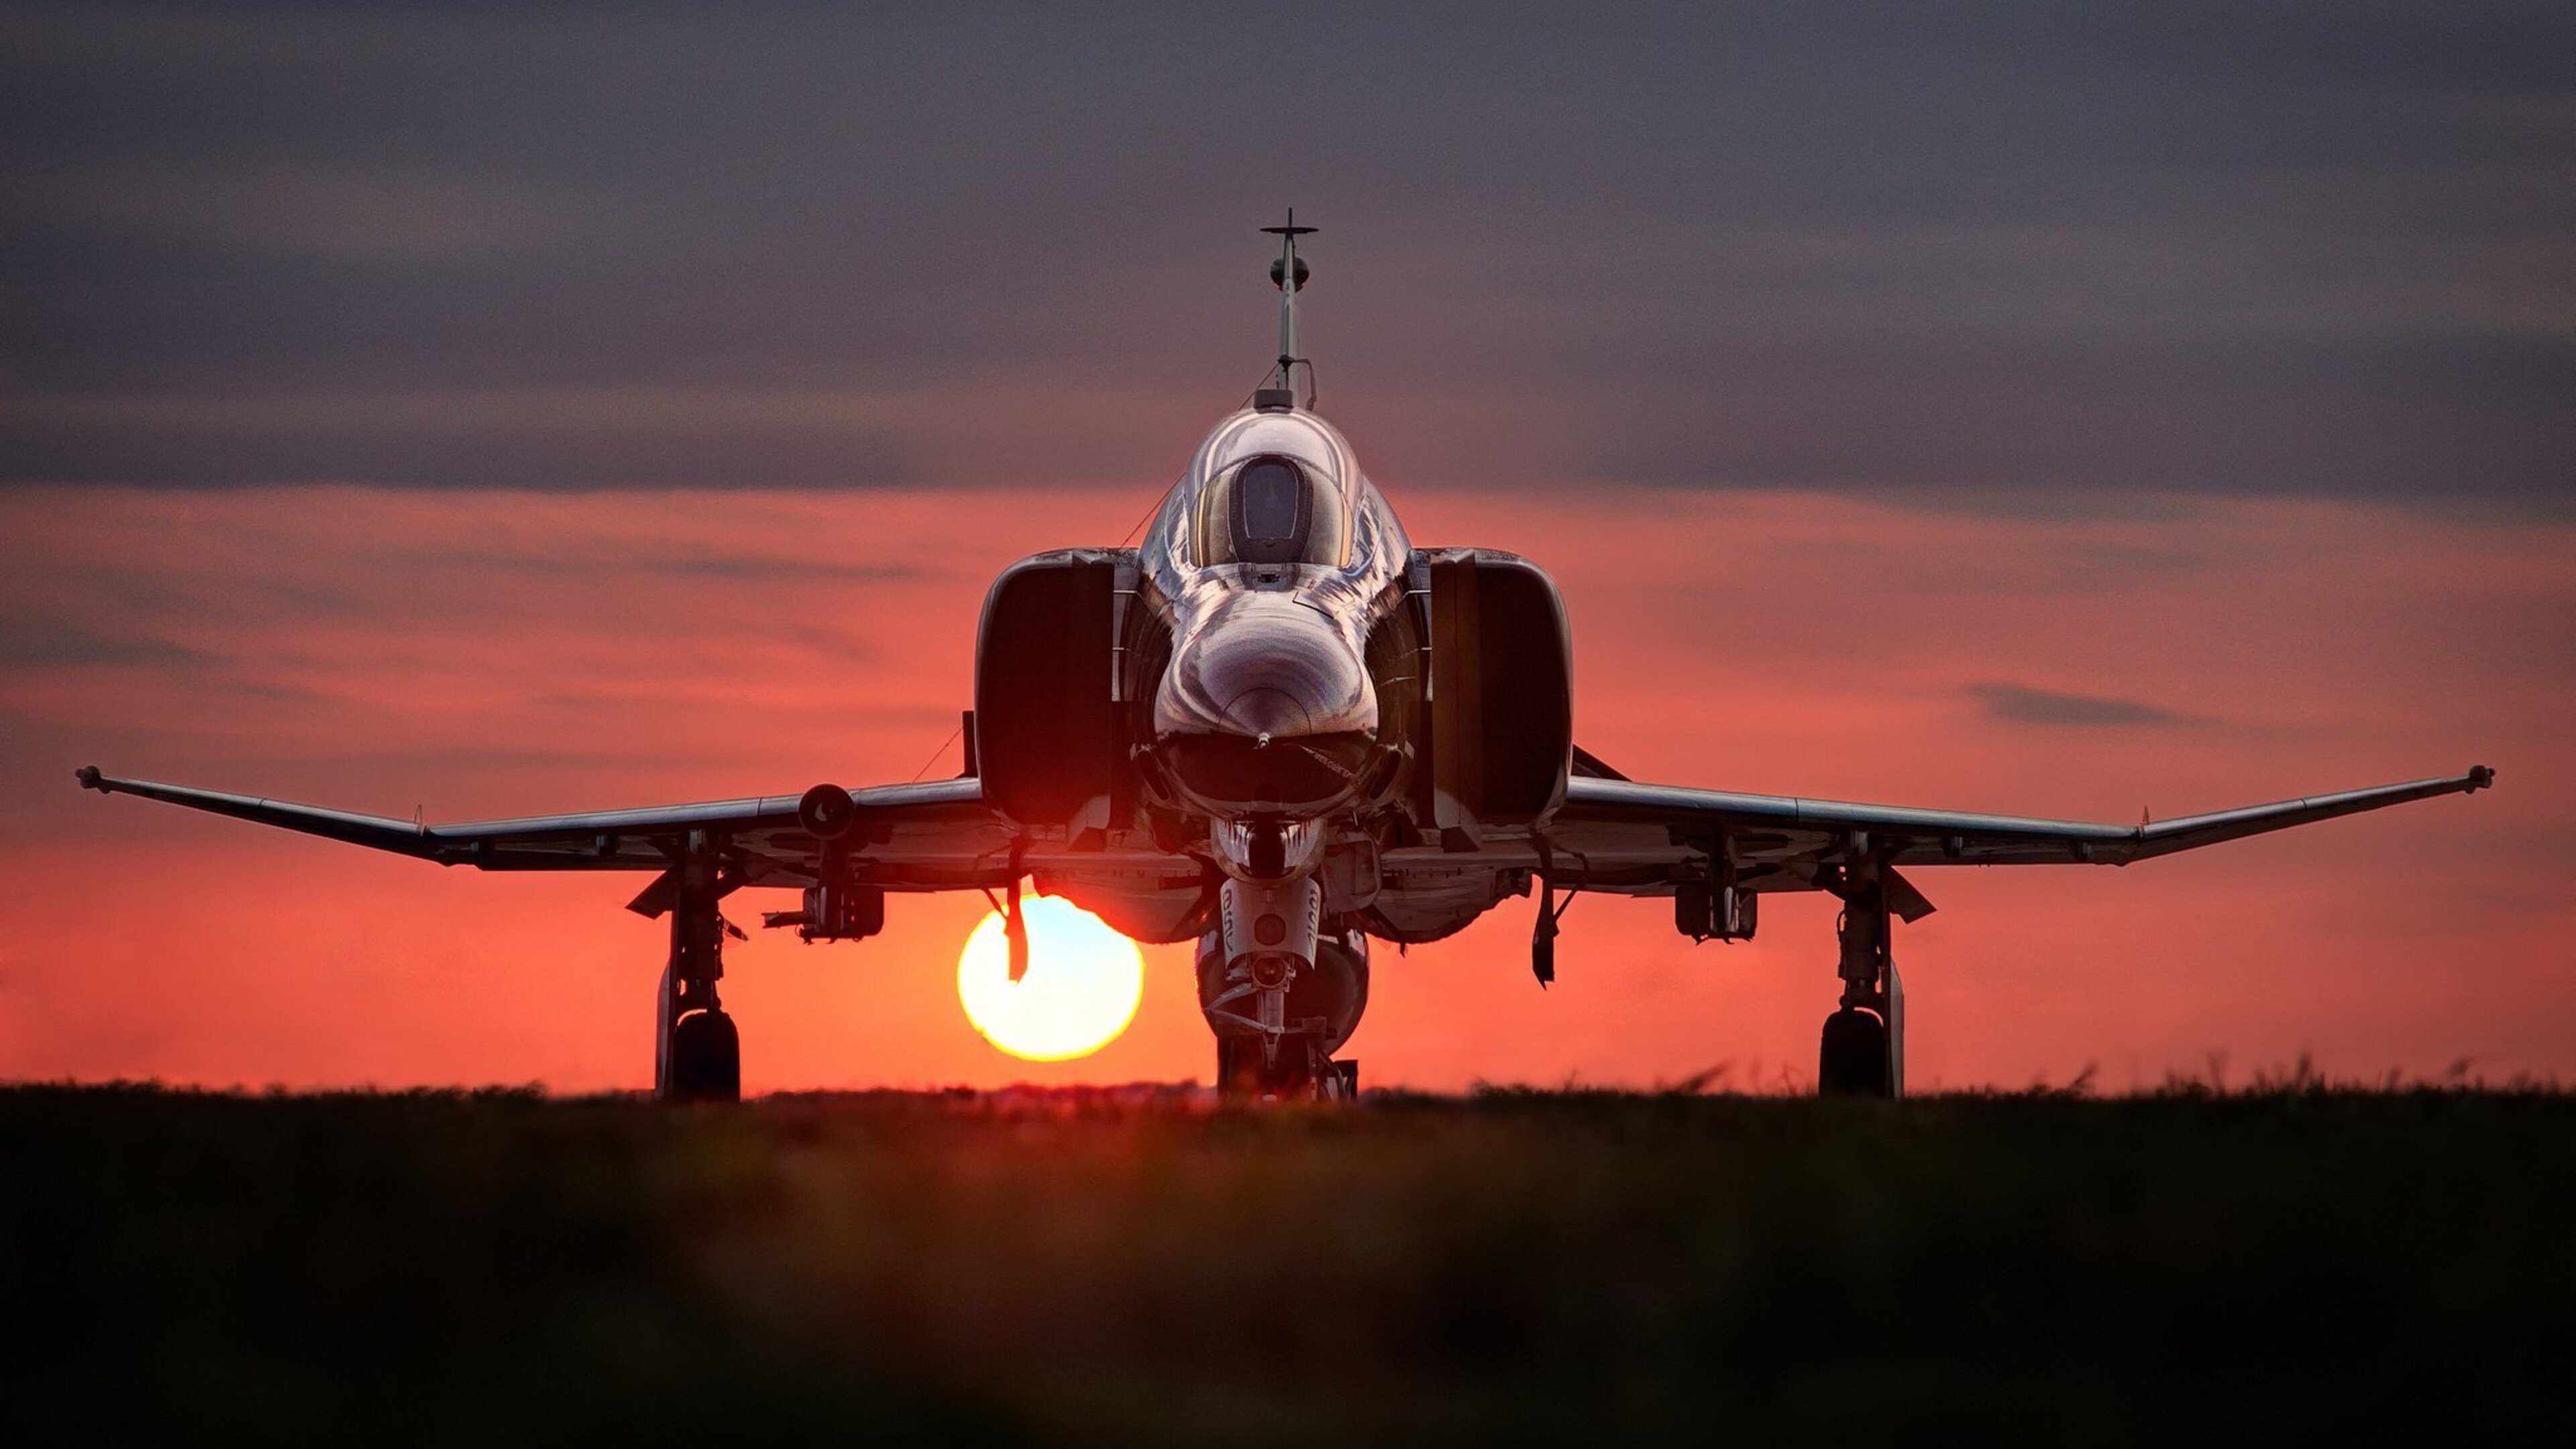 3d Wallpaper For Mobile 480x800 3840x2160 Military Aircraft 4k Hd 4k Wallpapers Images